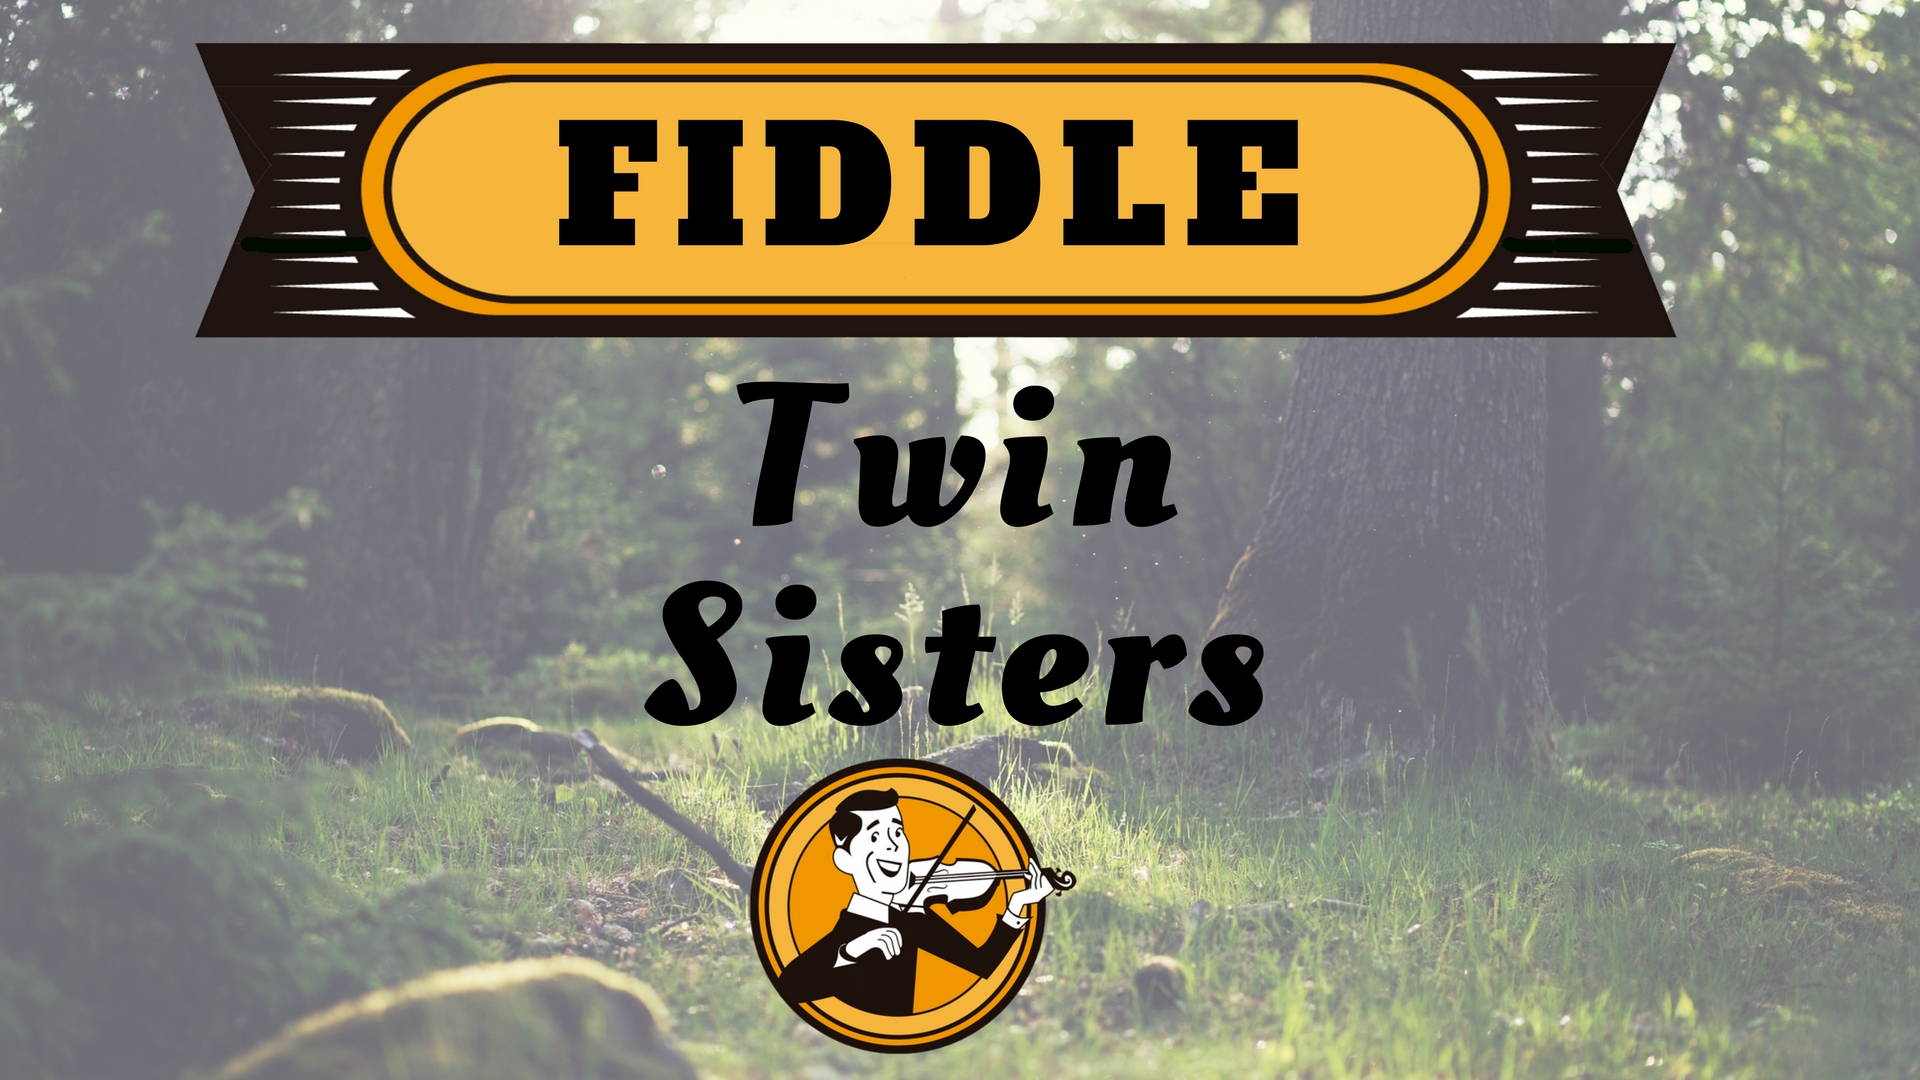 Fiddle twin sisters